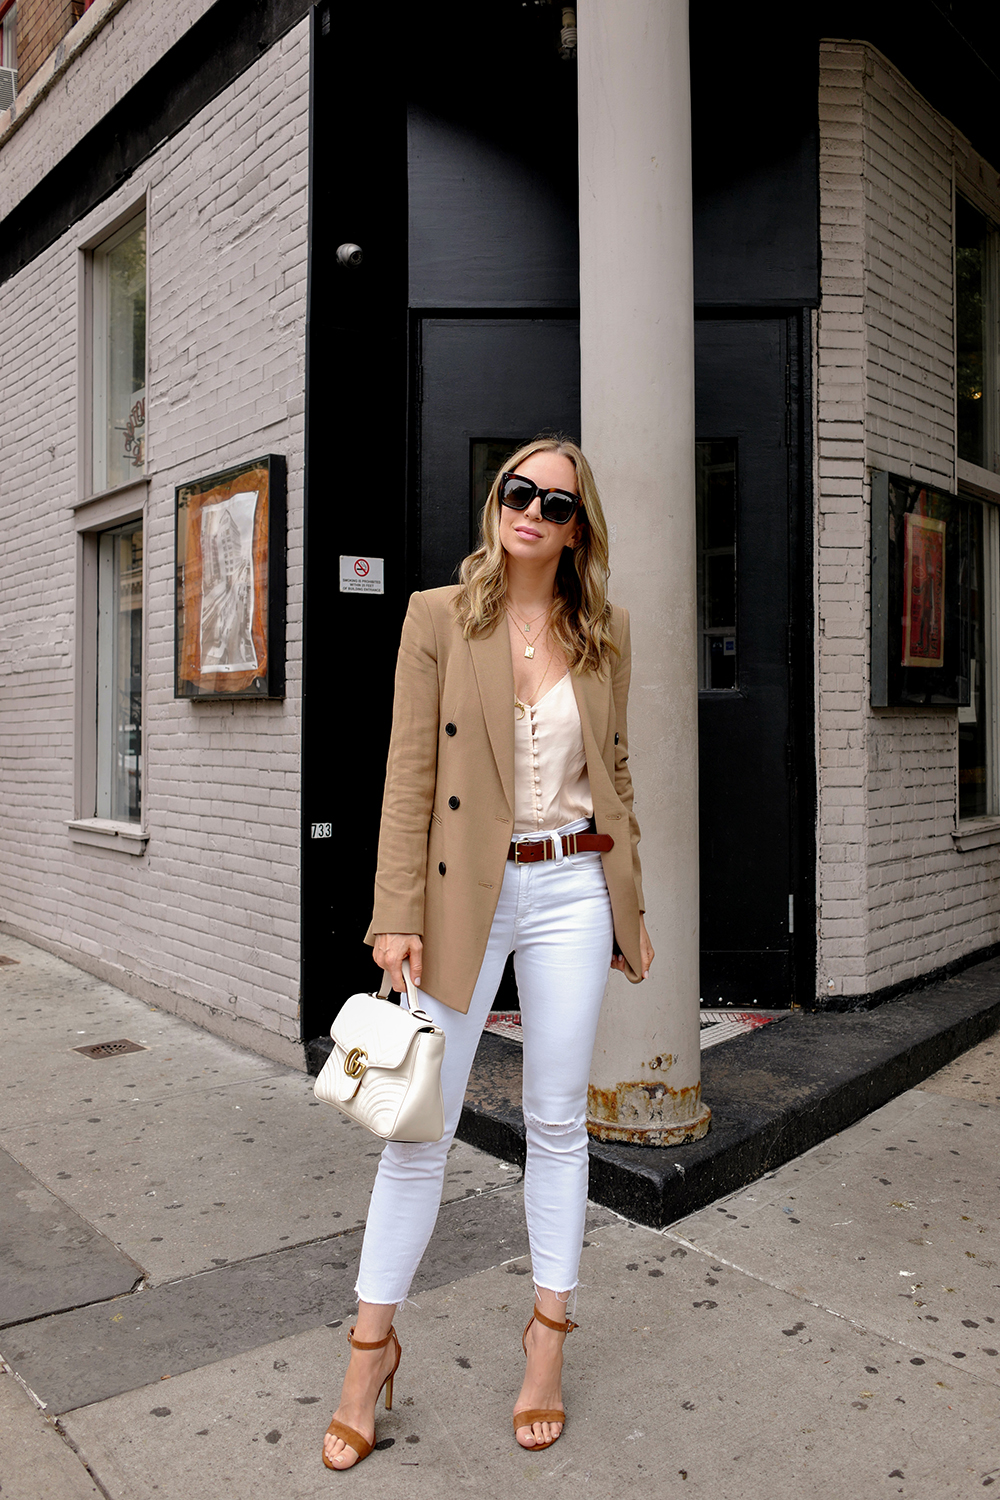 Theory Blazer, White & Tan, 9-5 Work Outfit, Helena of Brooklyn Blonde